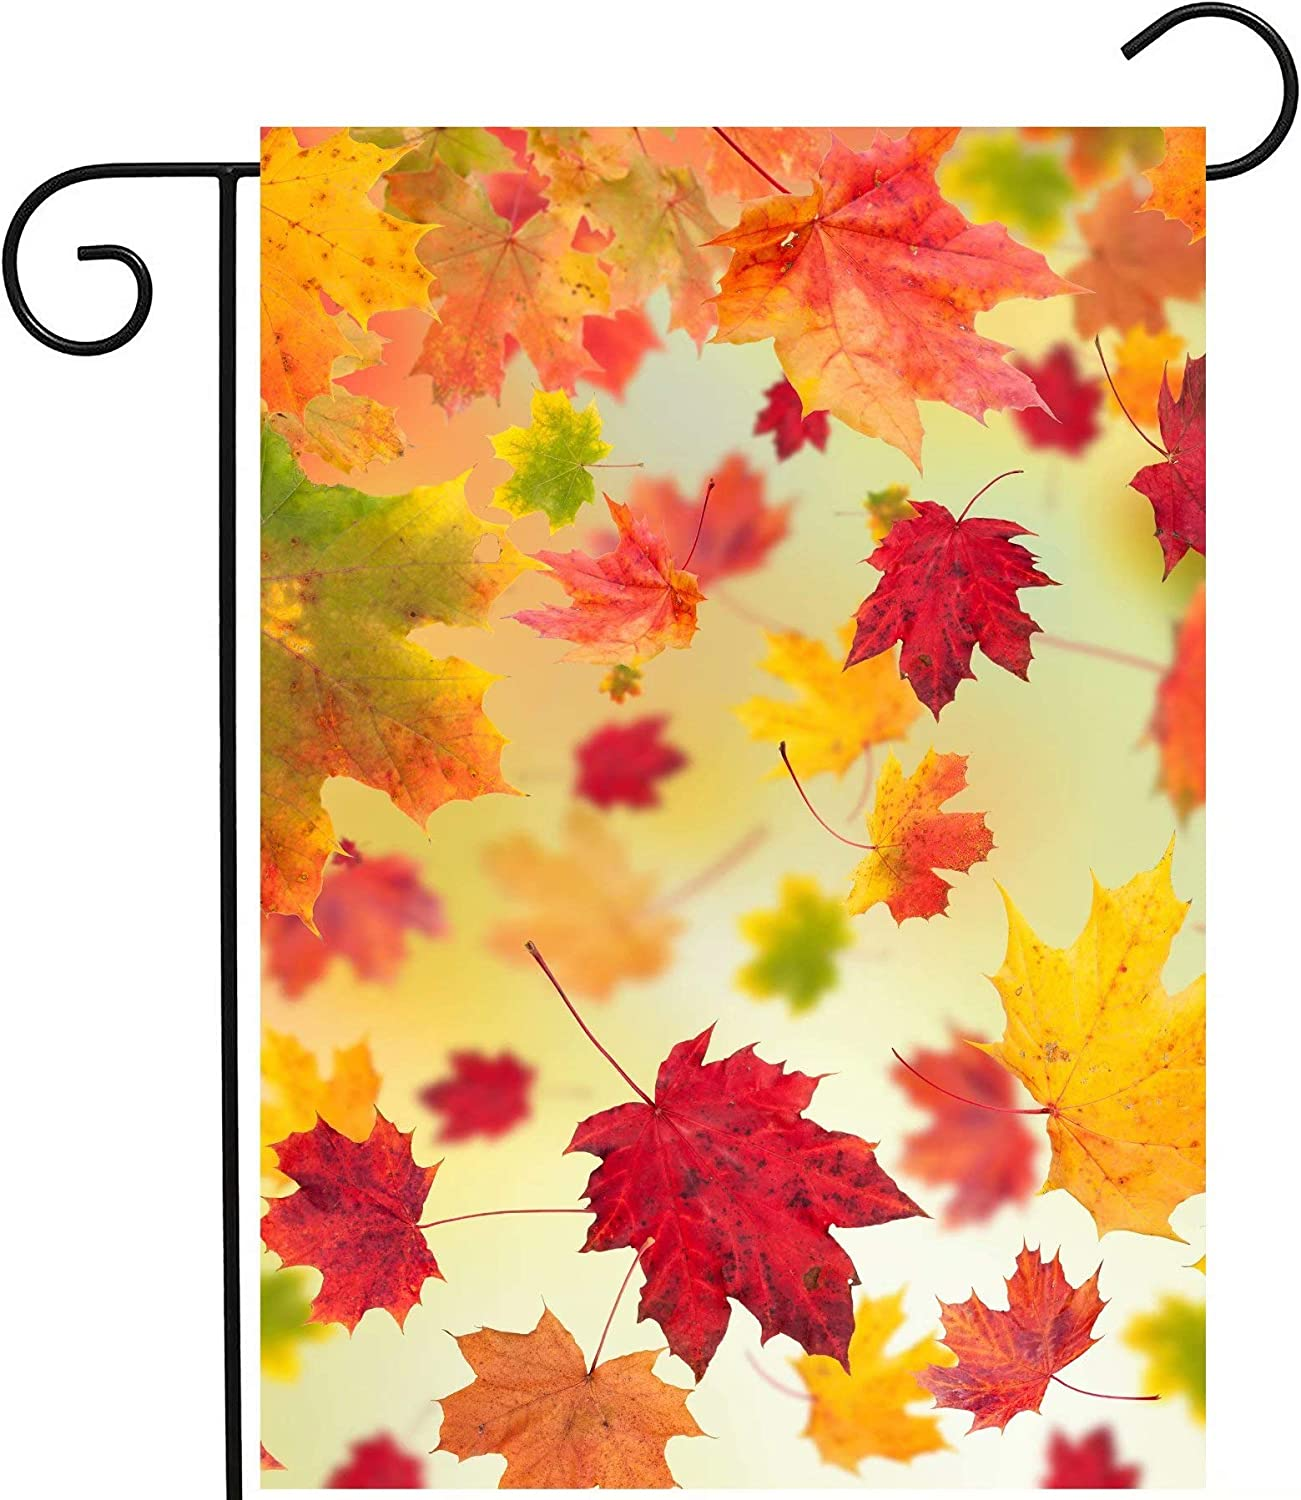 """ShineSnow Autumn Fallen Maple Leaves Fall Seasonal Scenery Garden Yard Flag 12""""x 18"""" Double Sided Polyester Welcome House Flag Banners for Patio Lawn Home Outdoor Decor"""